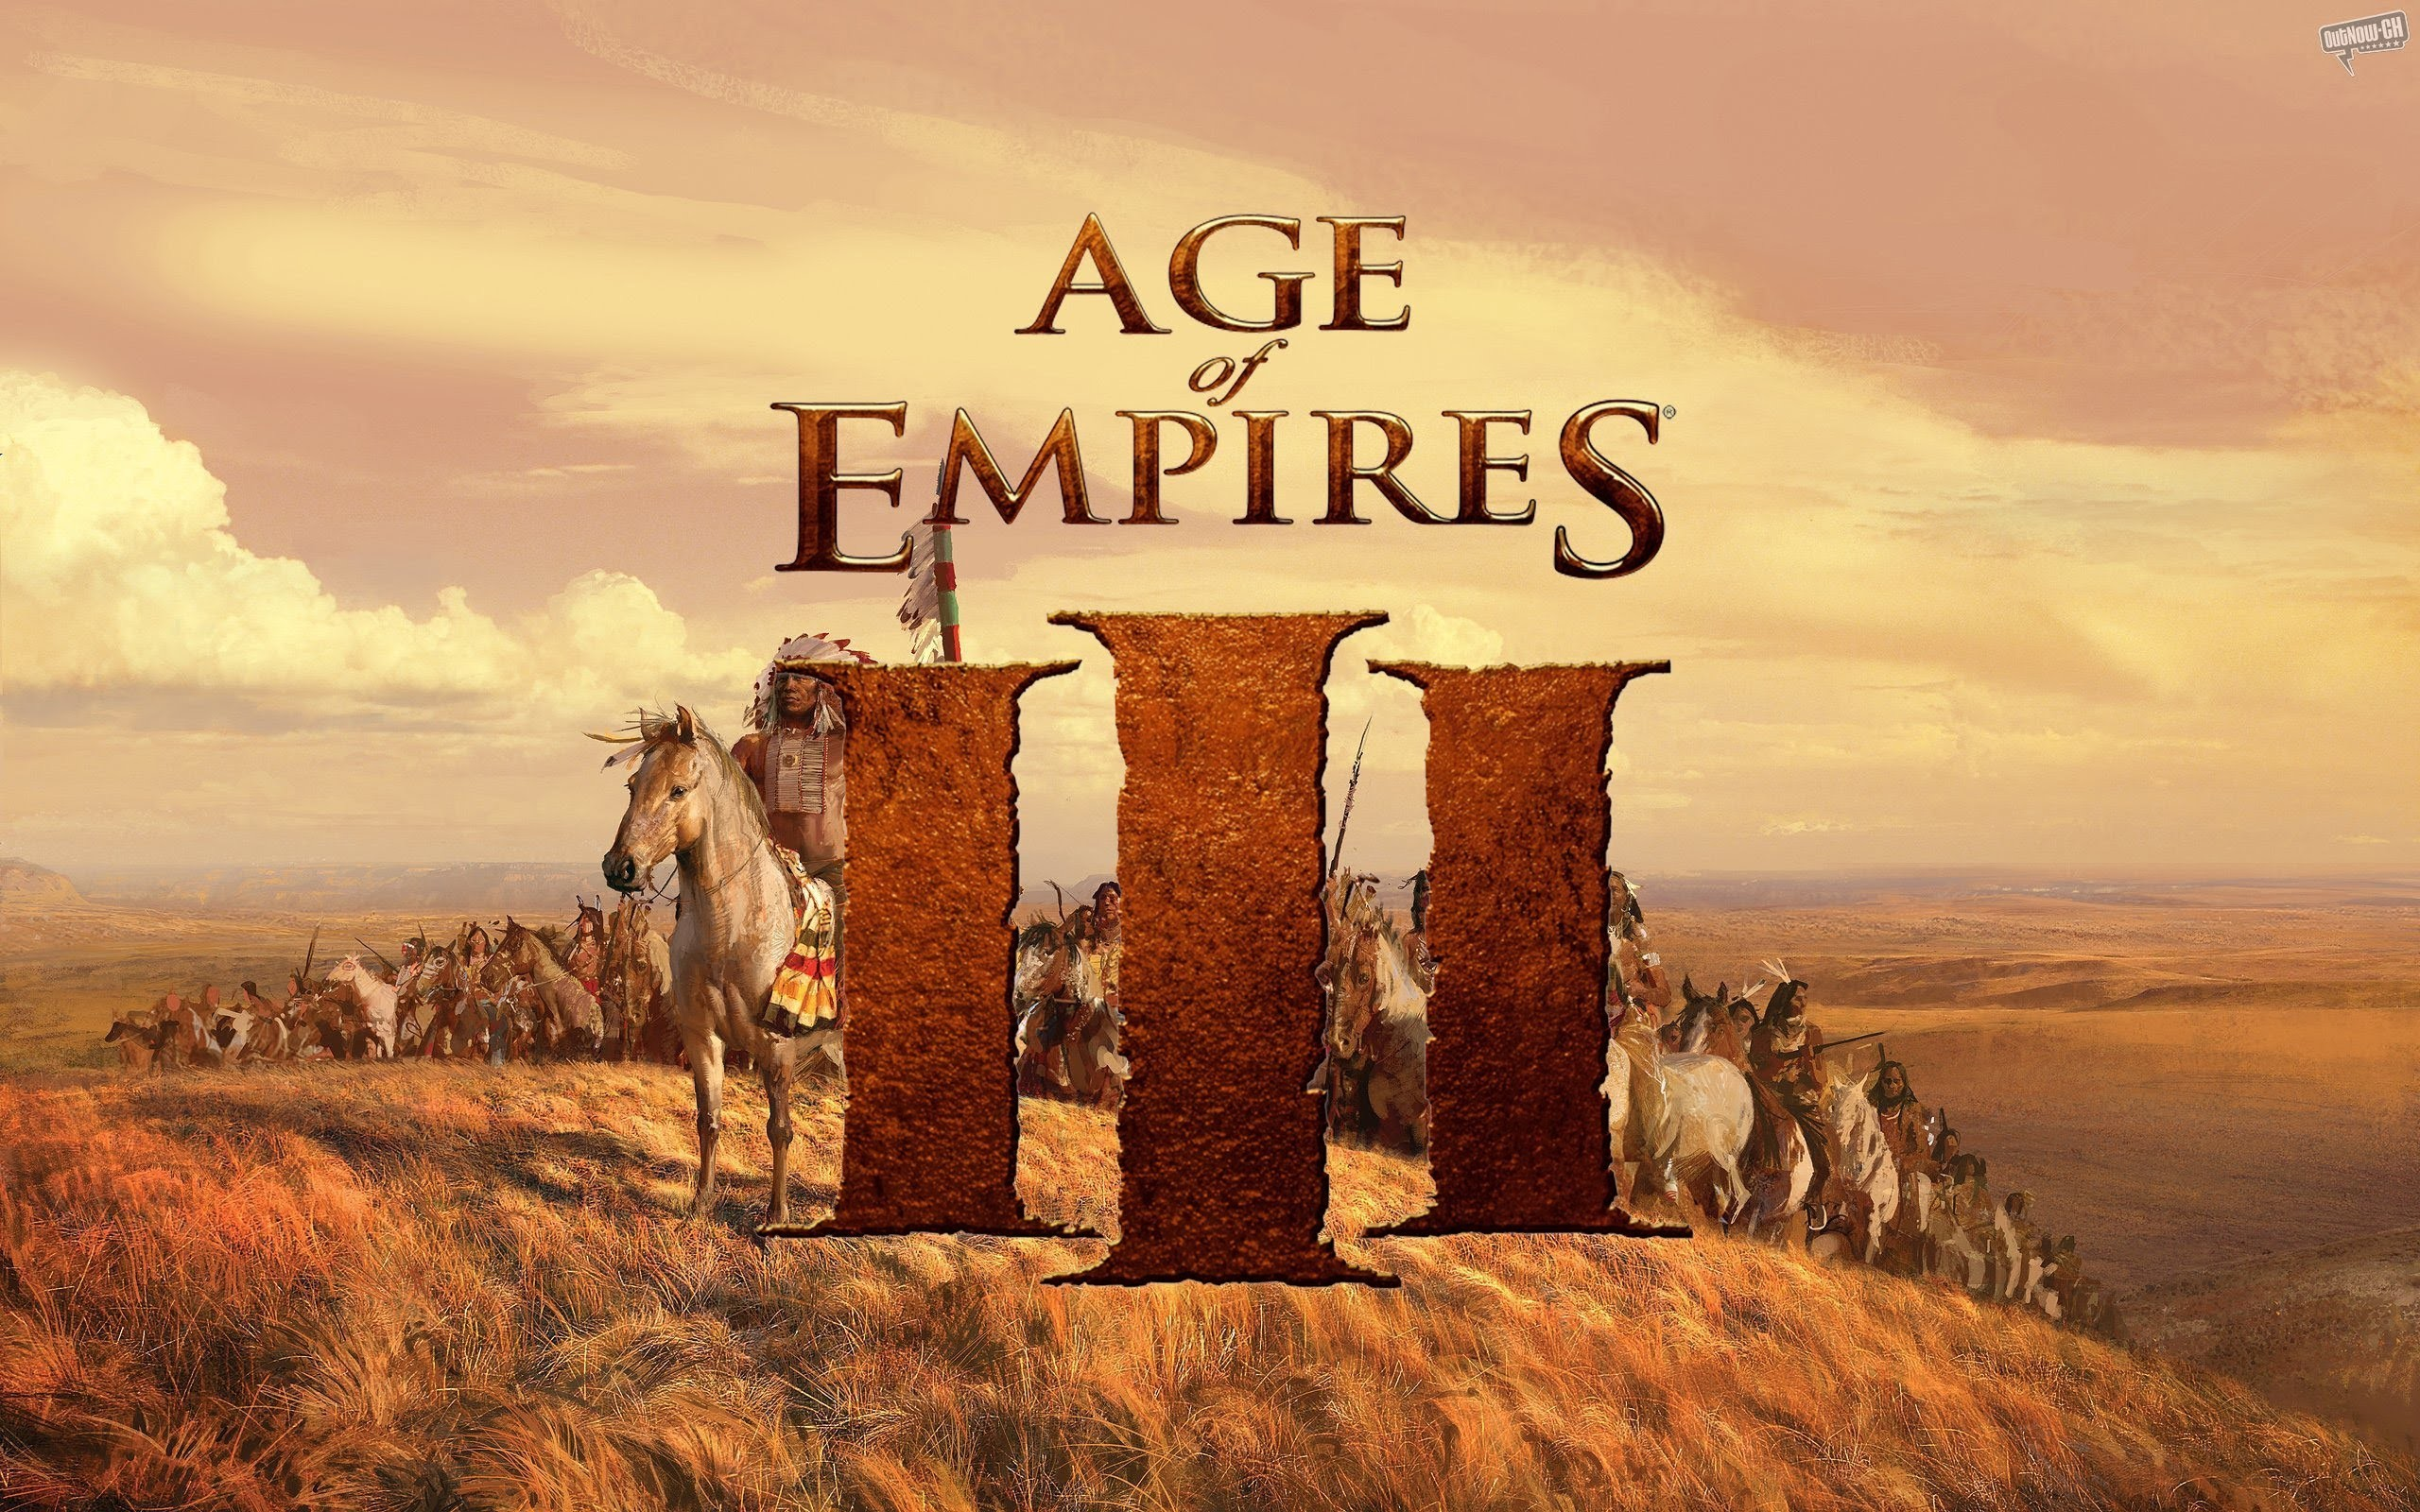 Age Of Empires Wallpaper: Age Of Empires Wallpapers (66+ Images